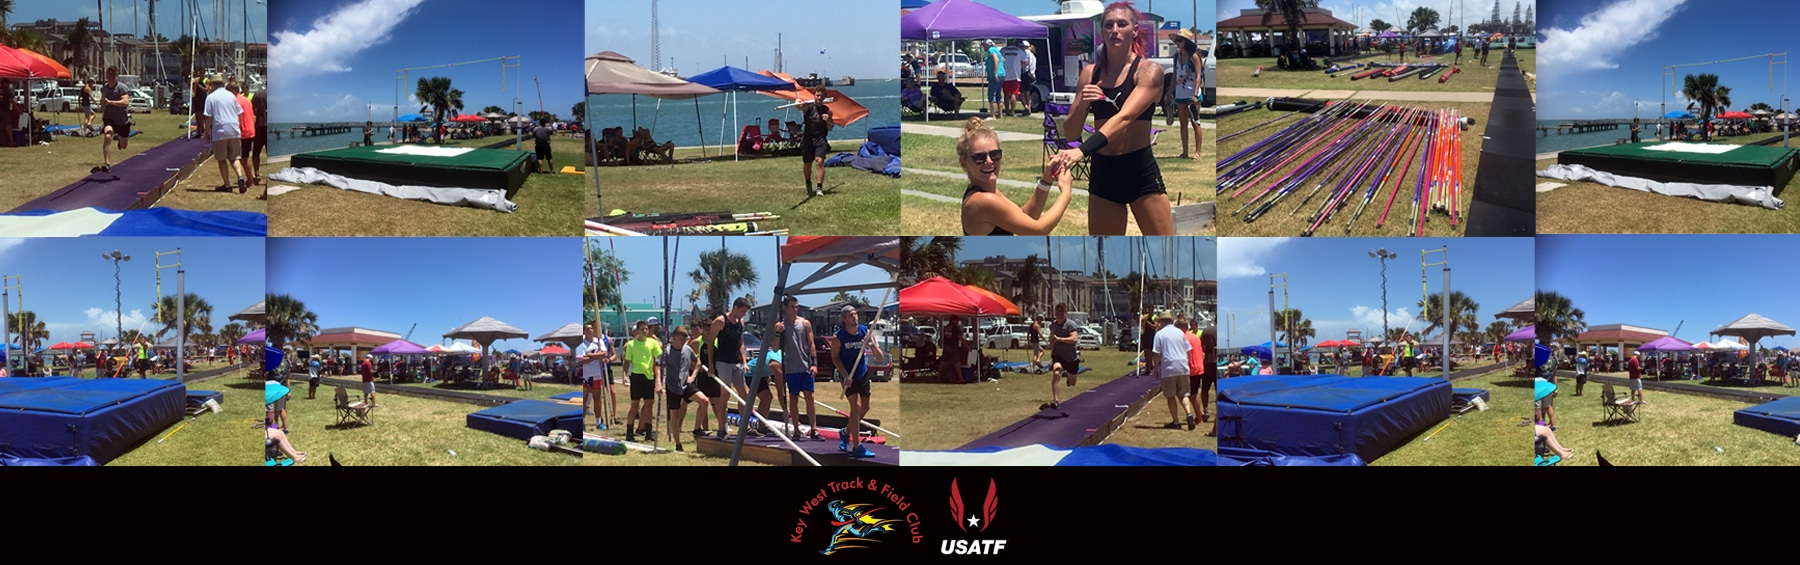 Pole Vault in Paradise